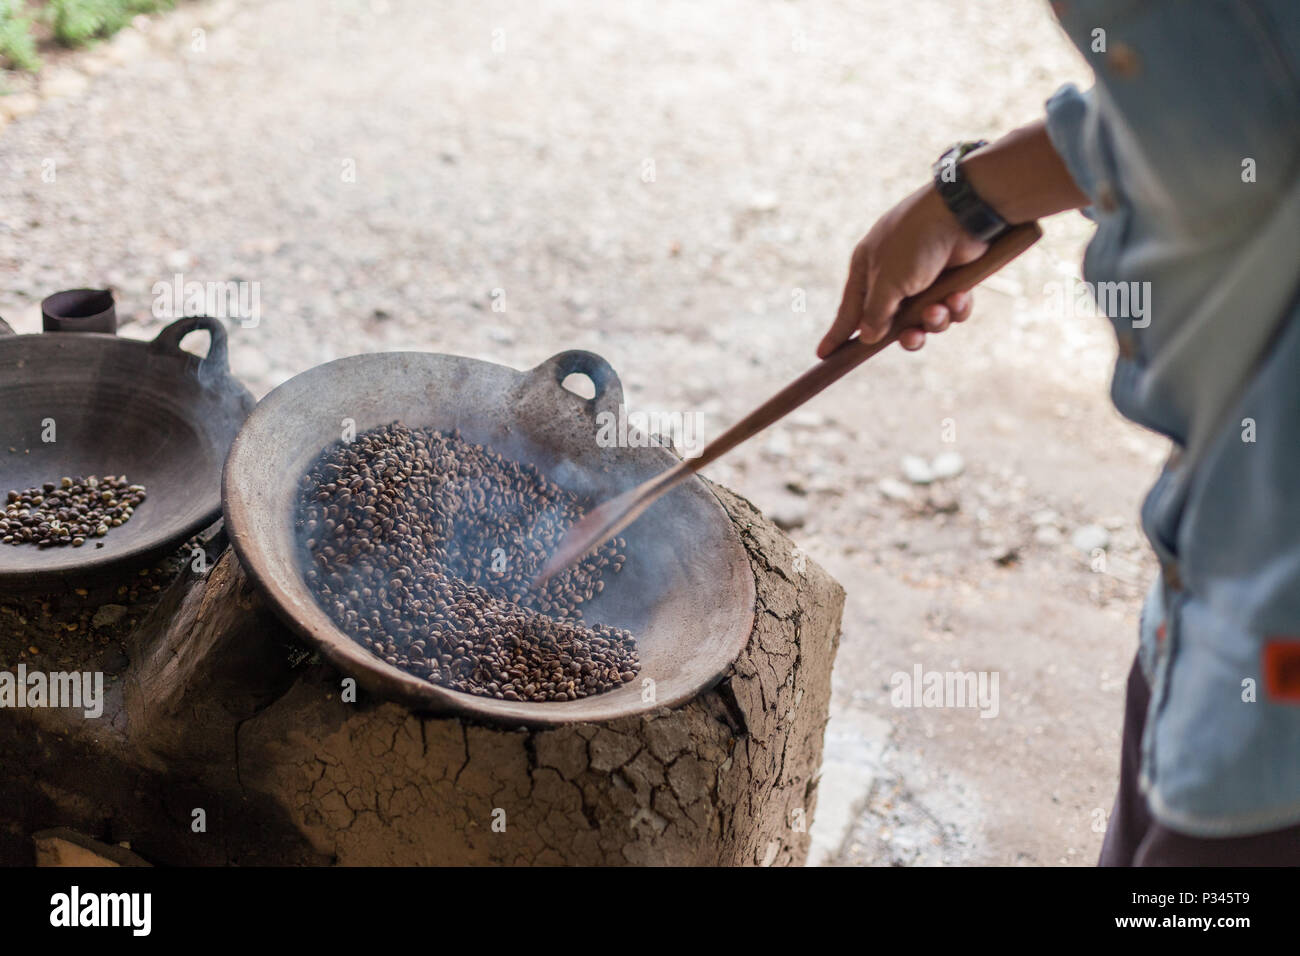 Master roasters manually roast coffee beans over a wood-fired stove near Banyuwangi, Java, Indonesia - Stock Image